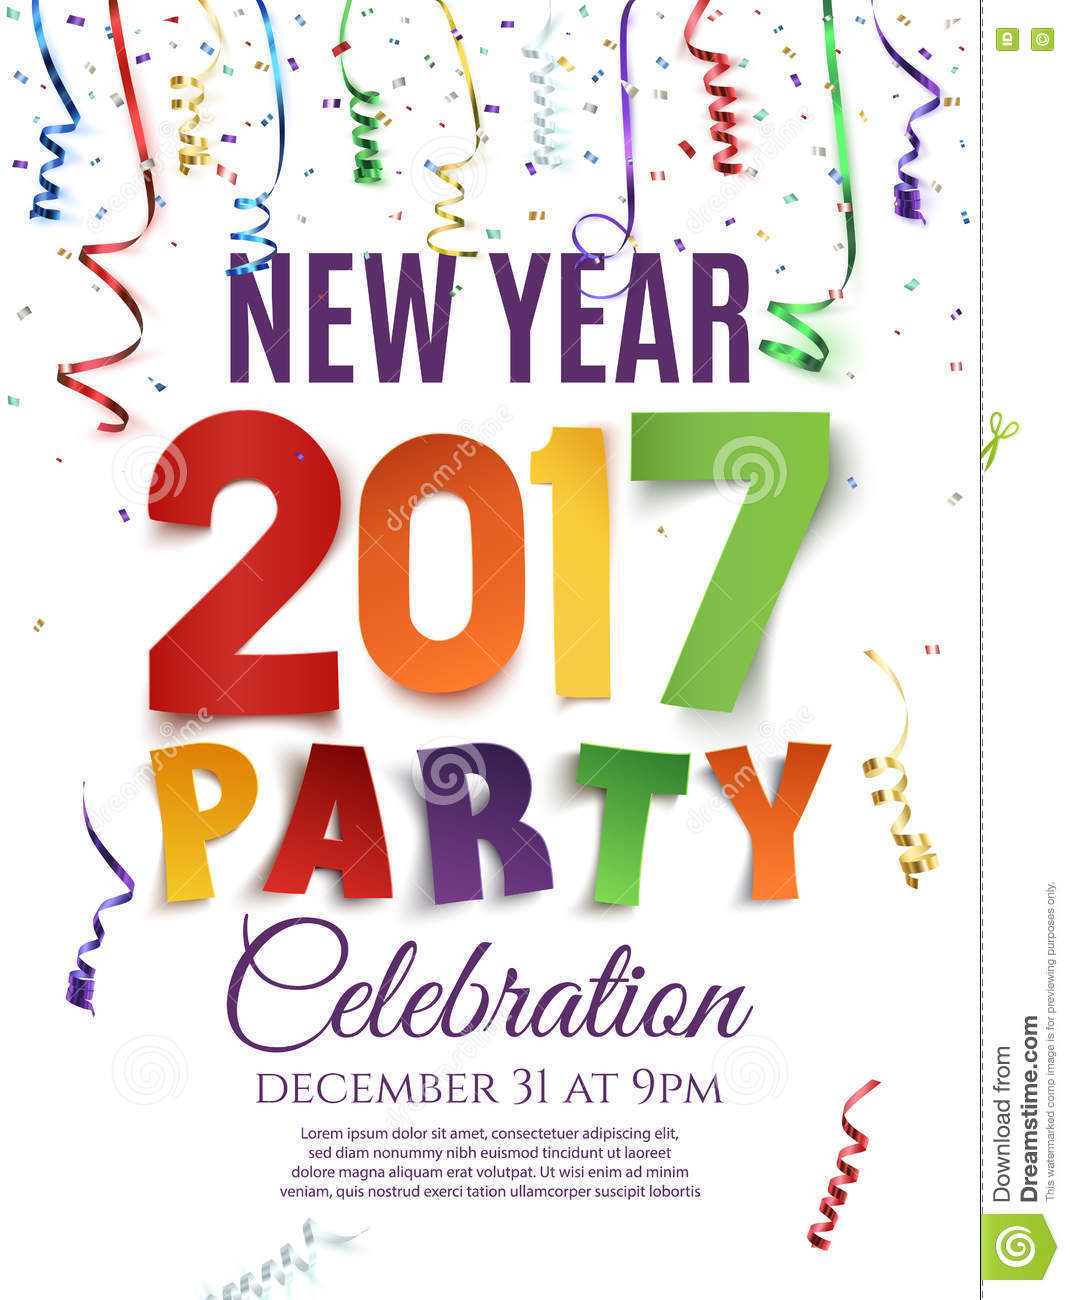 celebration party new year poster